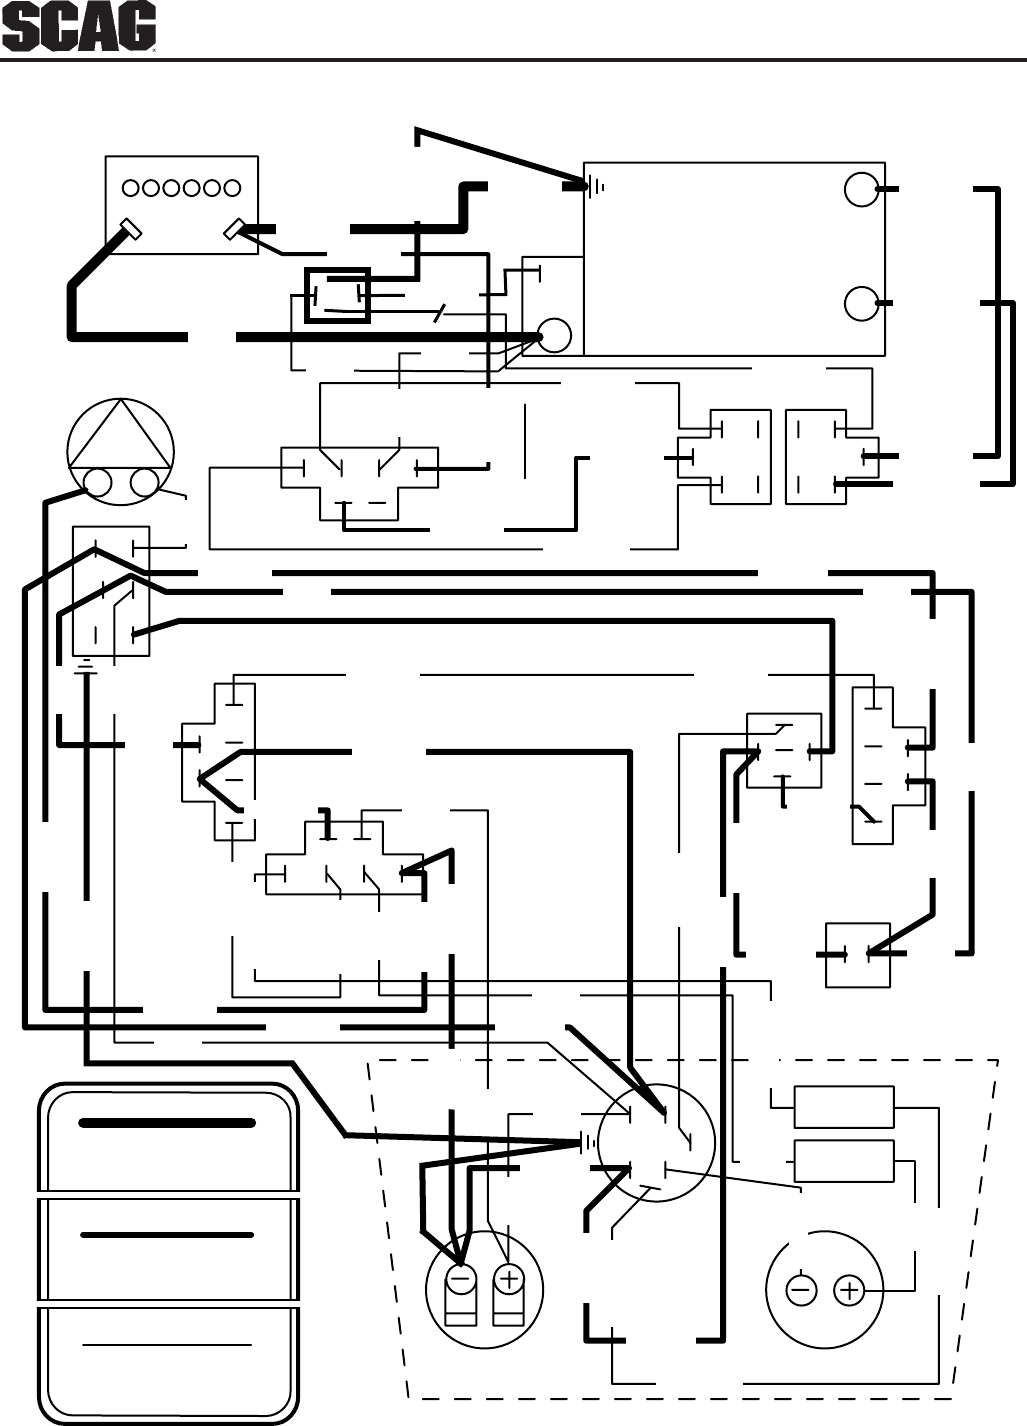 b9ce615b 020e 4d78 97db 0a4906c05276 bg22 scag wiring diagram on scag images free download wiring diagrams  at mifinder.co